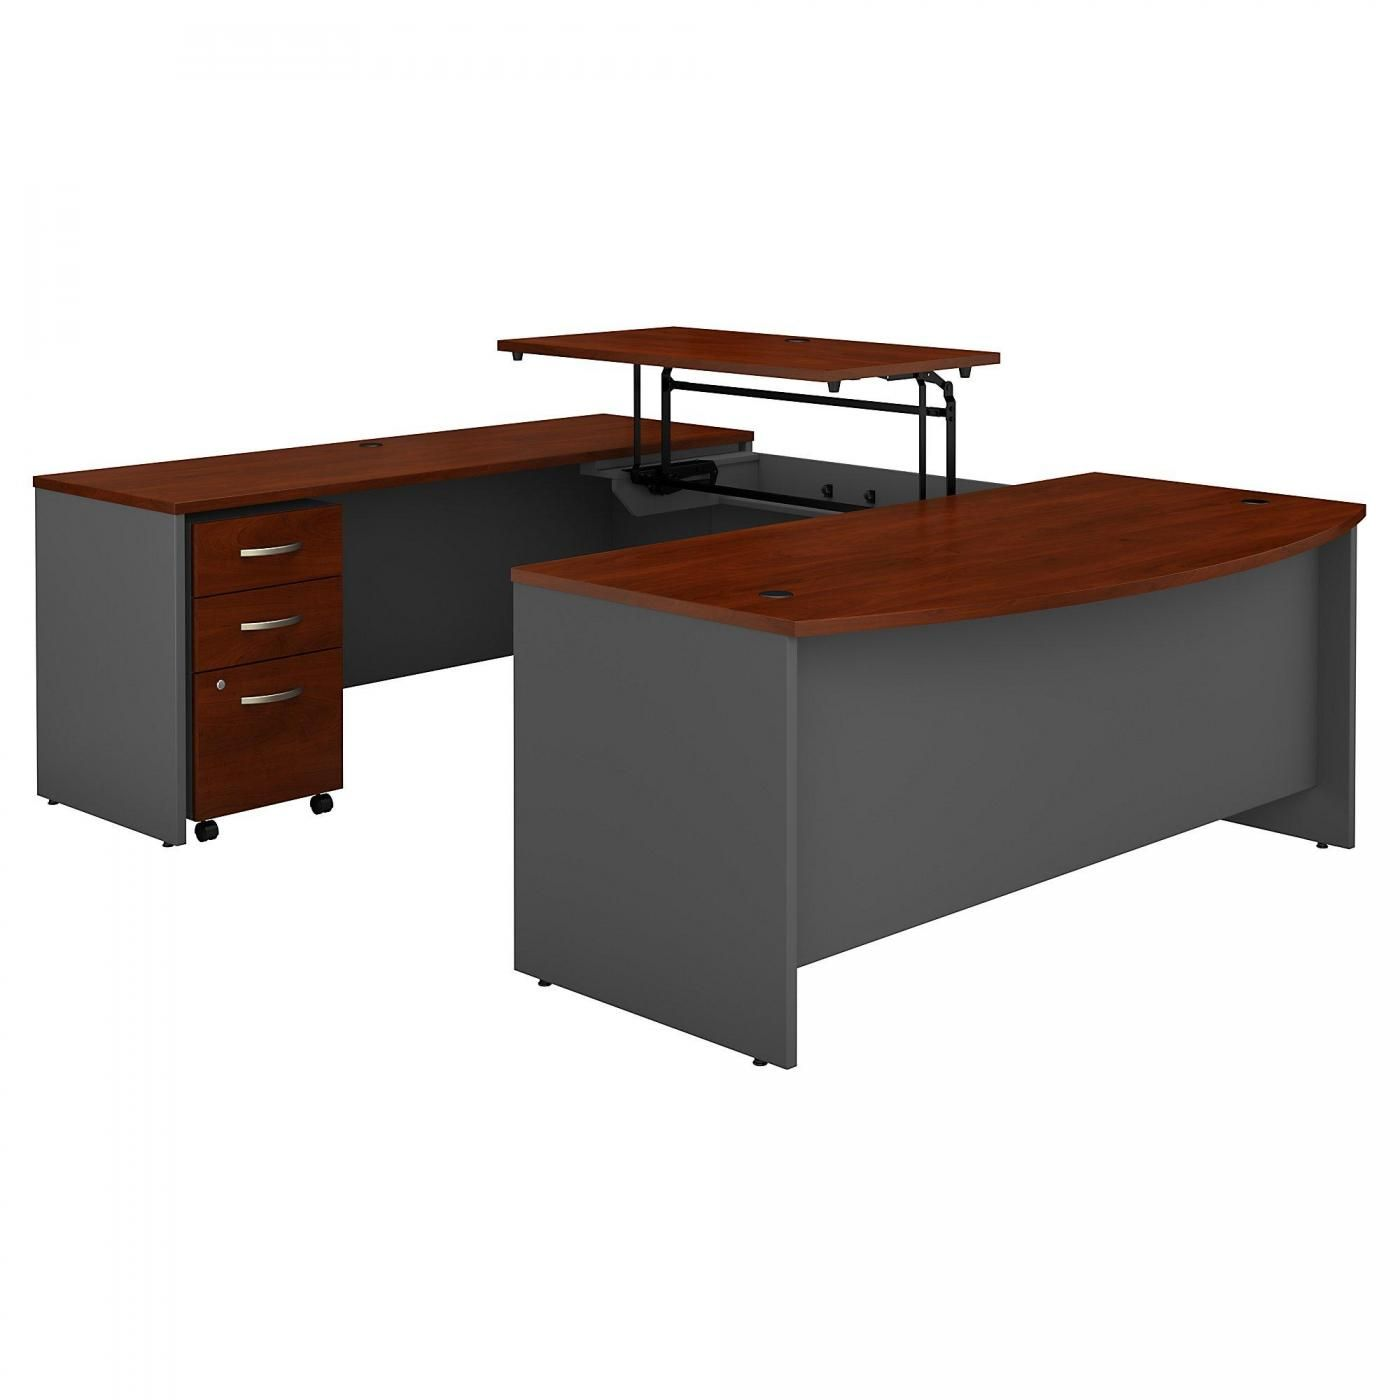 <font color=#c60><b>BUSH BUSINESS FURNITURE SERIES C 72W X 36D 3 POSITION SIT TO STAND BOW FRONT U SHAPED DESK WITH MOBILE FILE CABINET. FREE SHIPPING. VIDEO:</font></b>